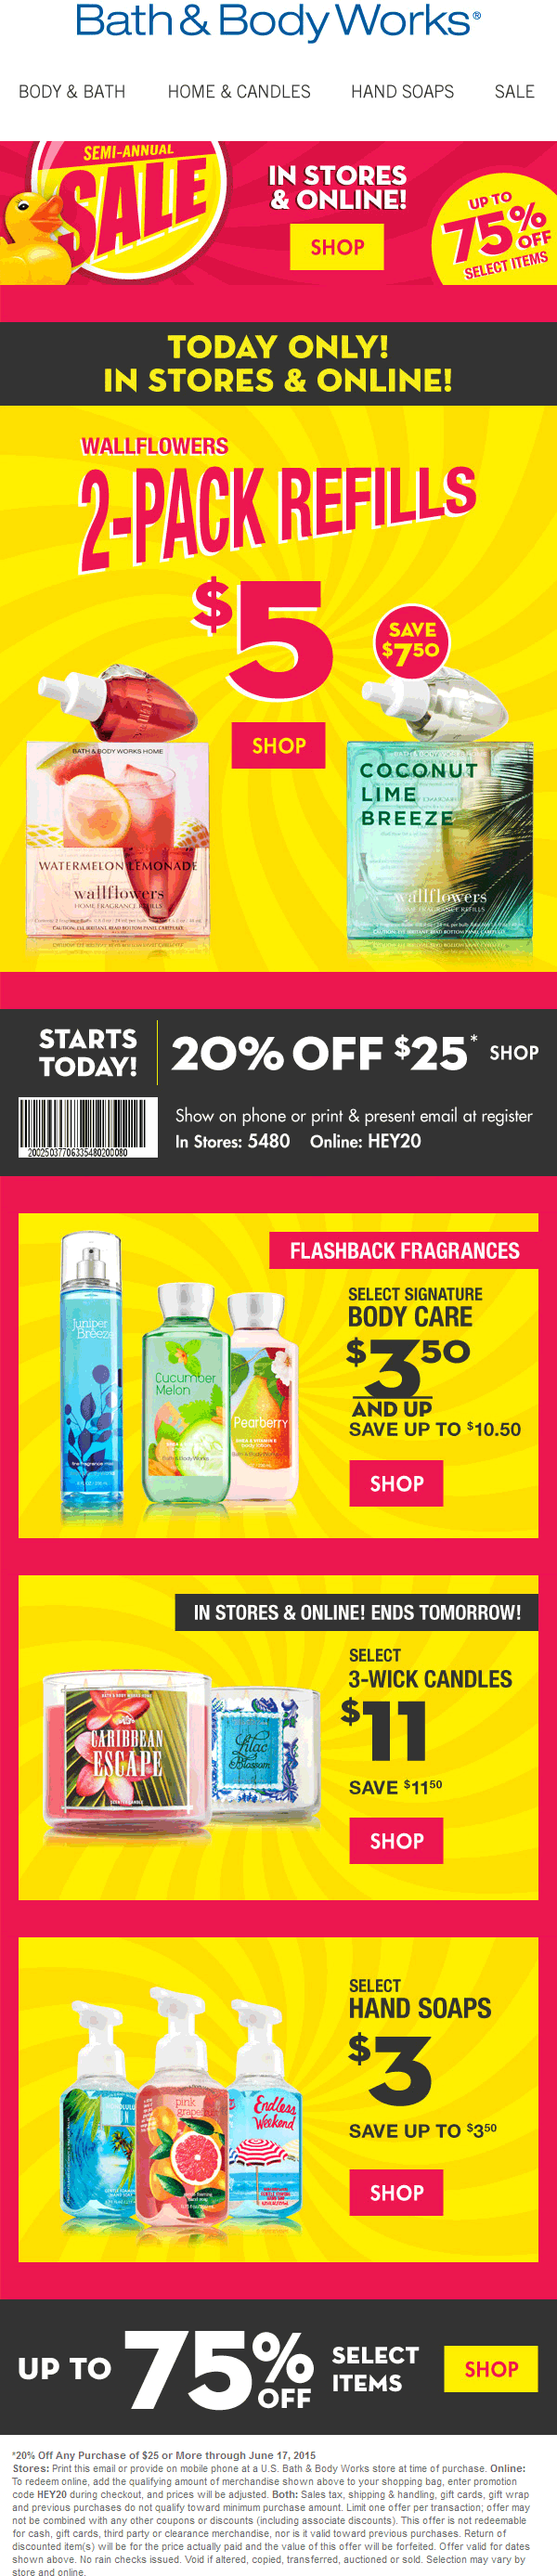 Bath & Body Works Coupon June 2017 20% off $25 at Bath & Body Works, or online via promo code HEY20